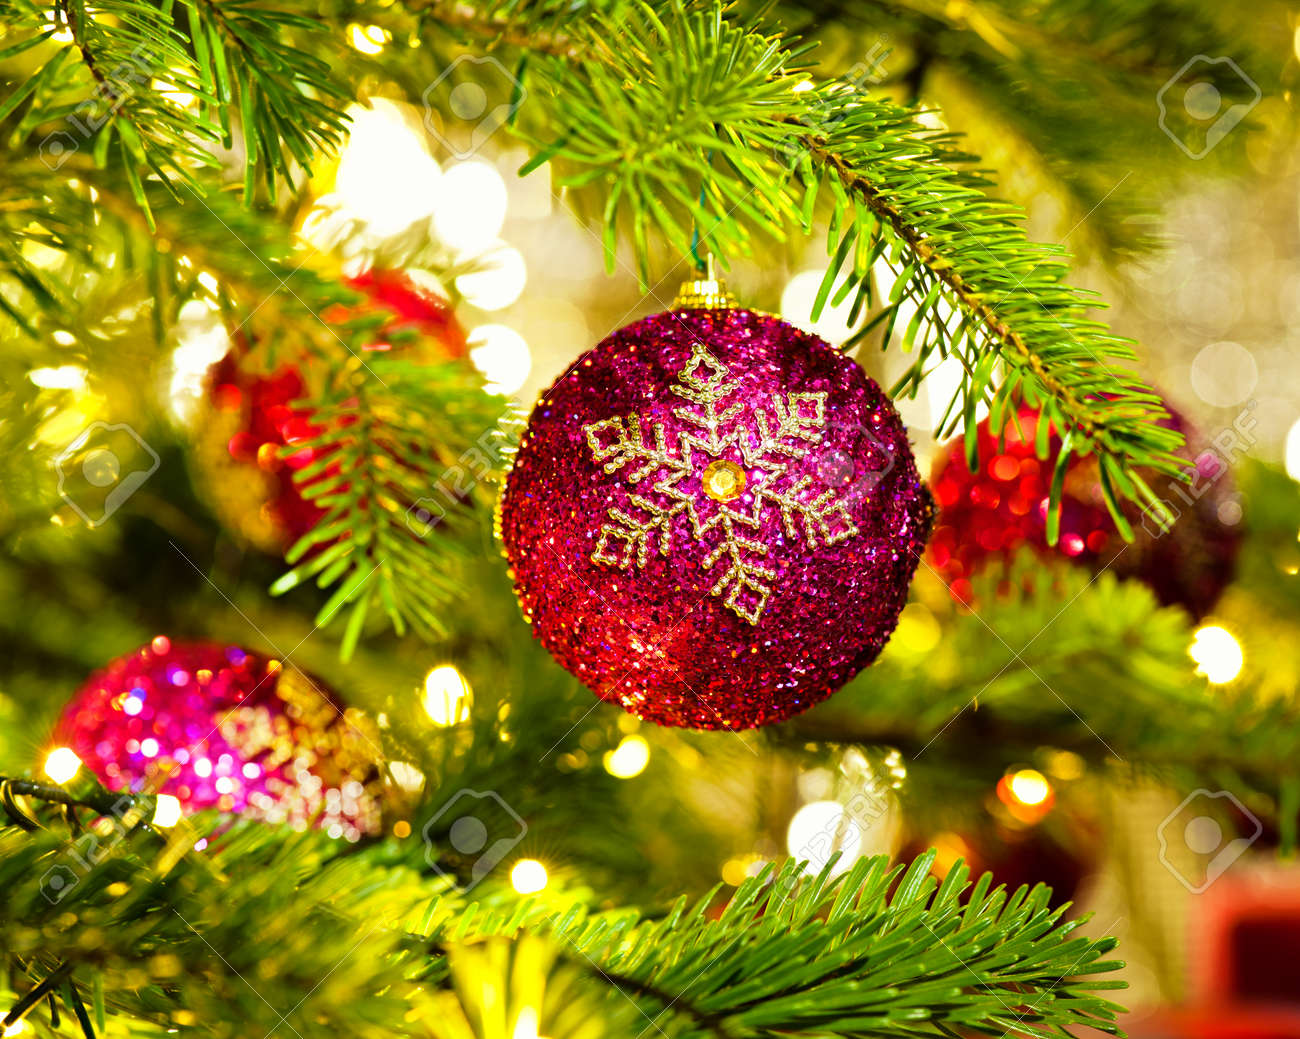 Bauble Ornament In A Real Christmas Tree In Bright Color Stock Photo Picture And Royalty Free Image Image 27305290